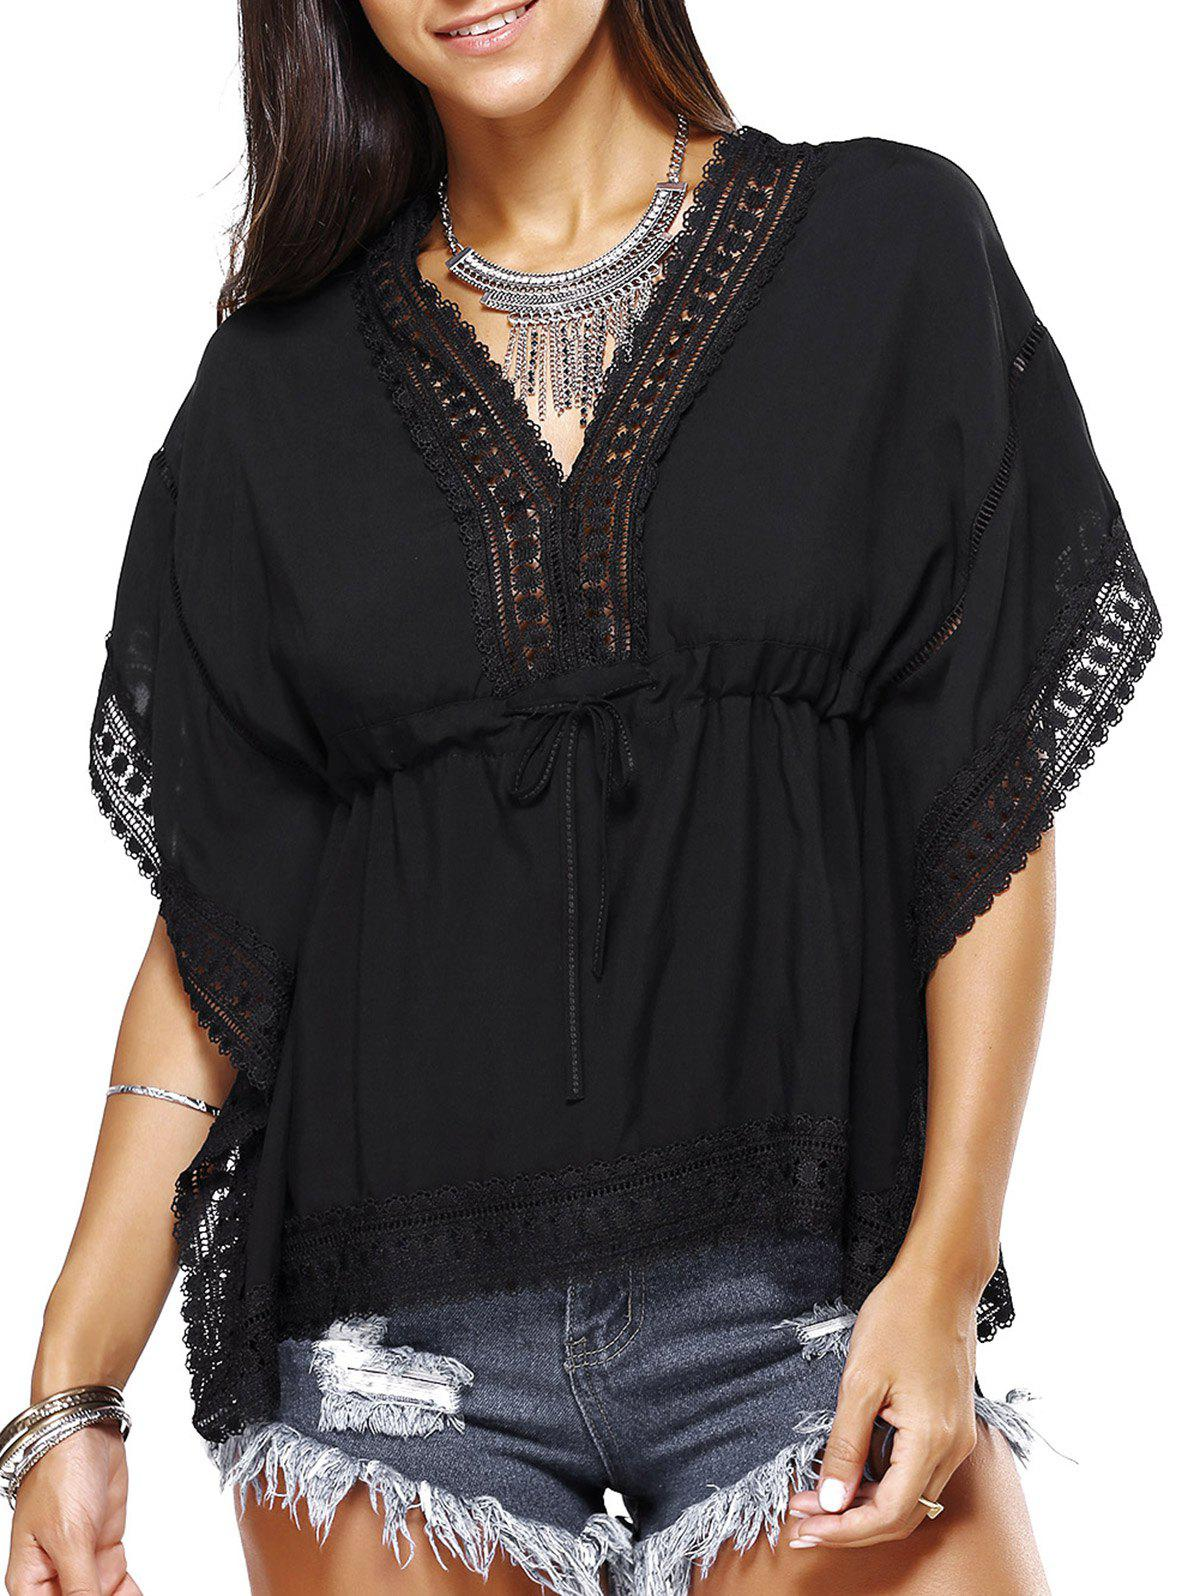 Endearing Batwing Sleeve Drawstring Blouse For Women